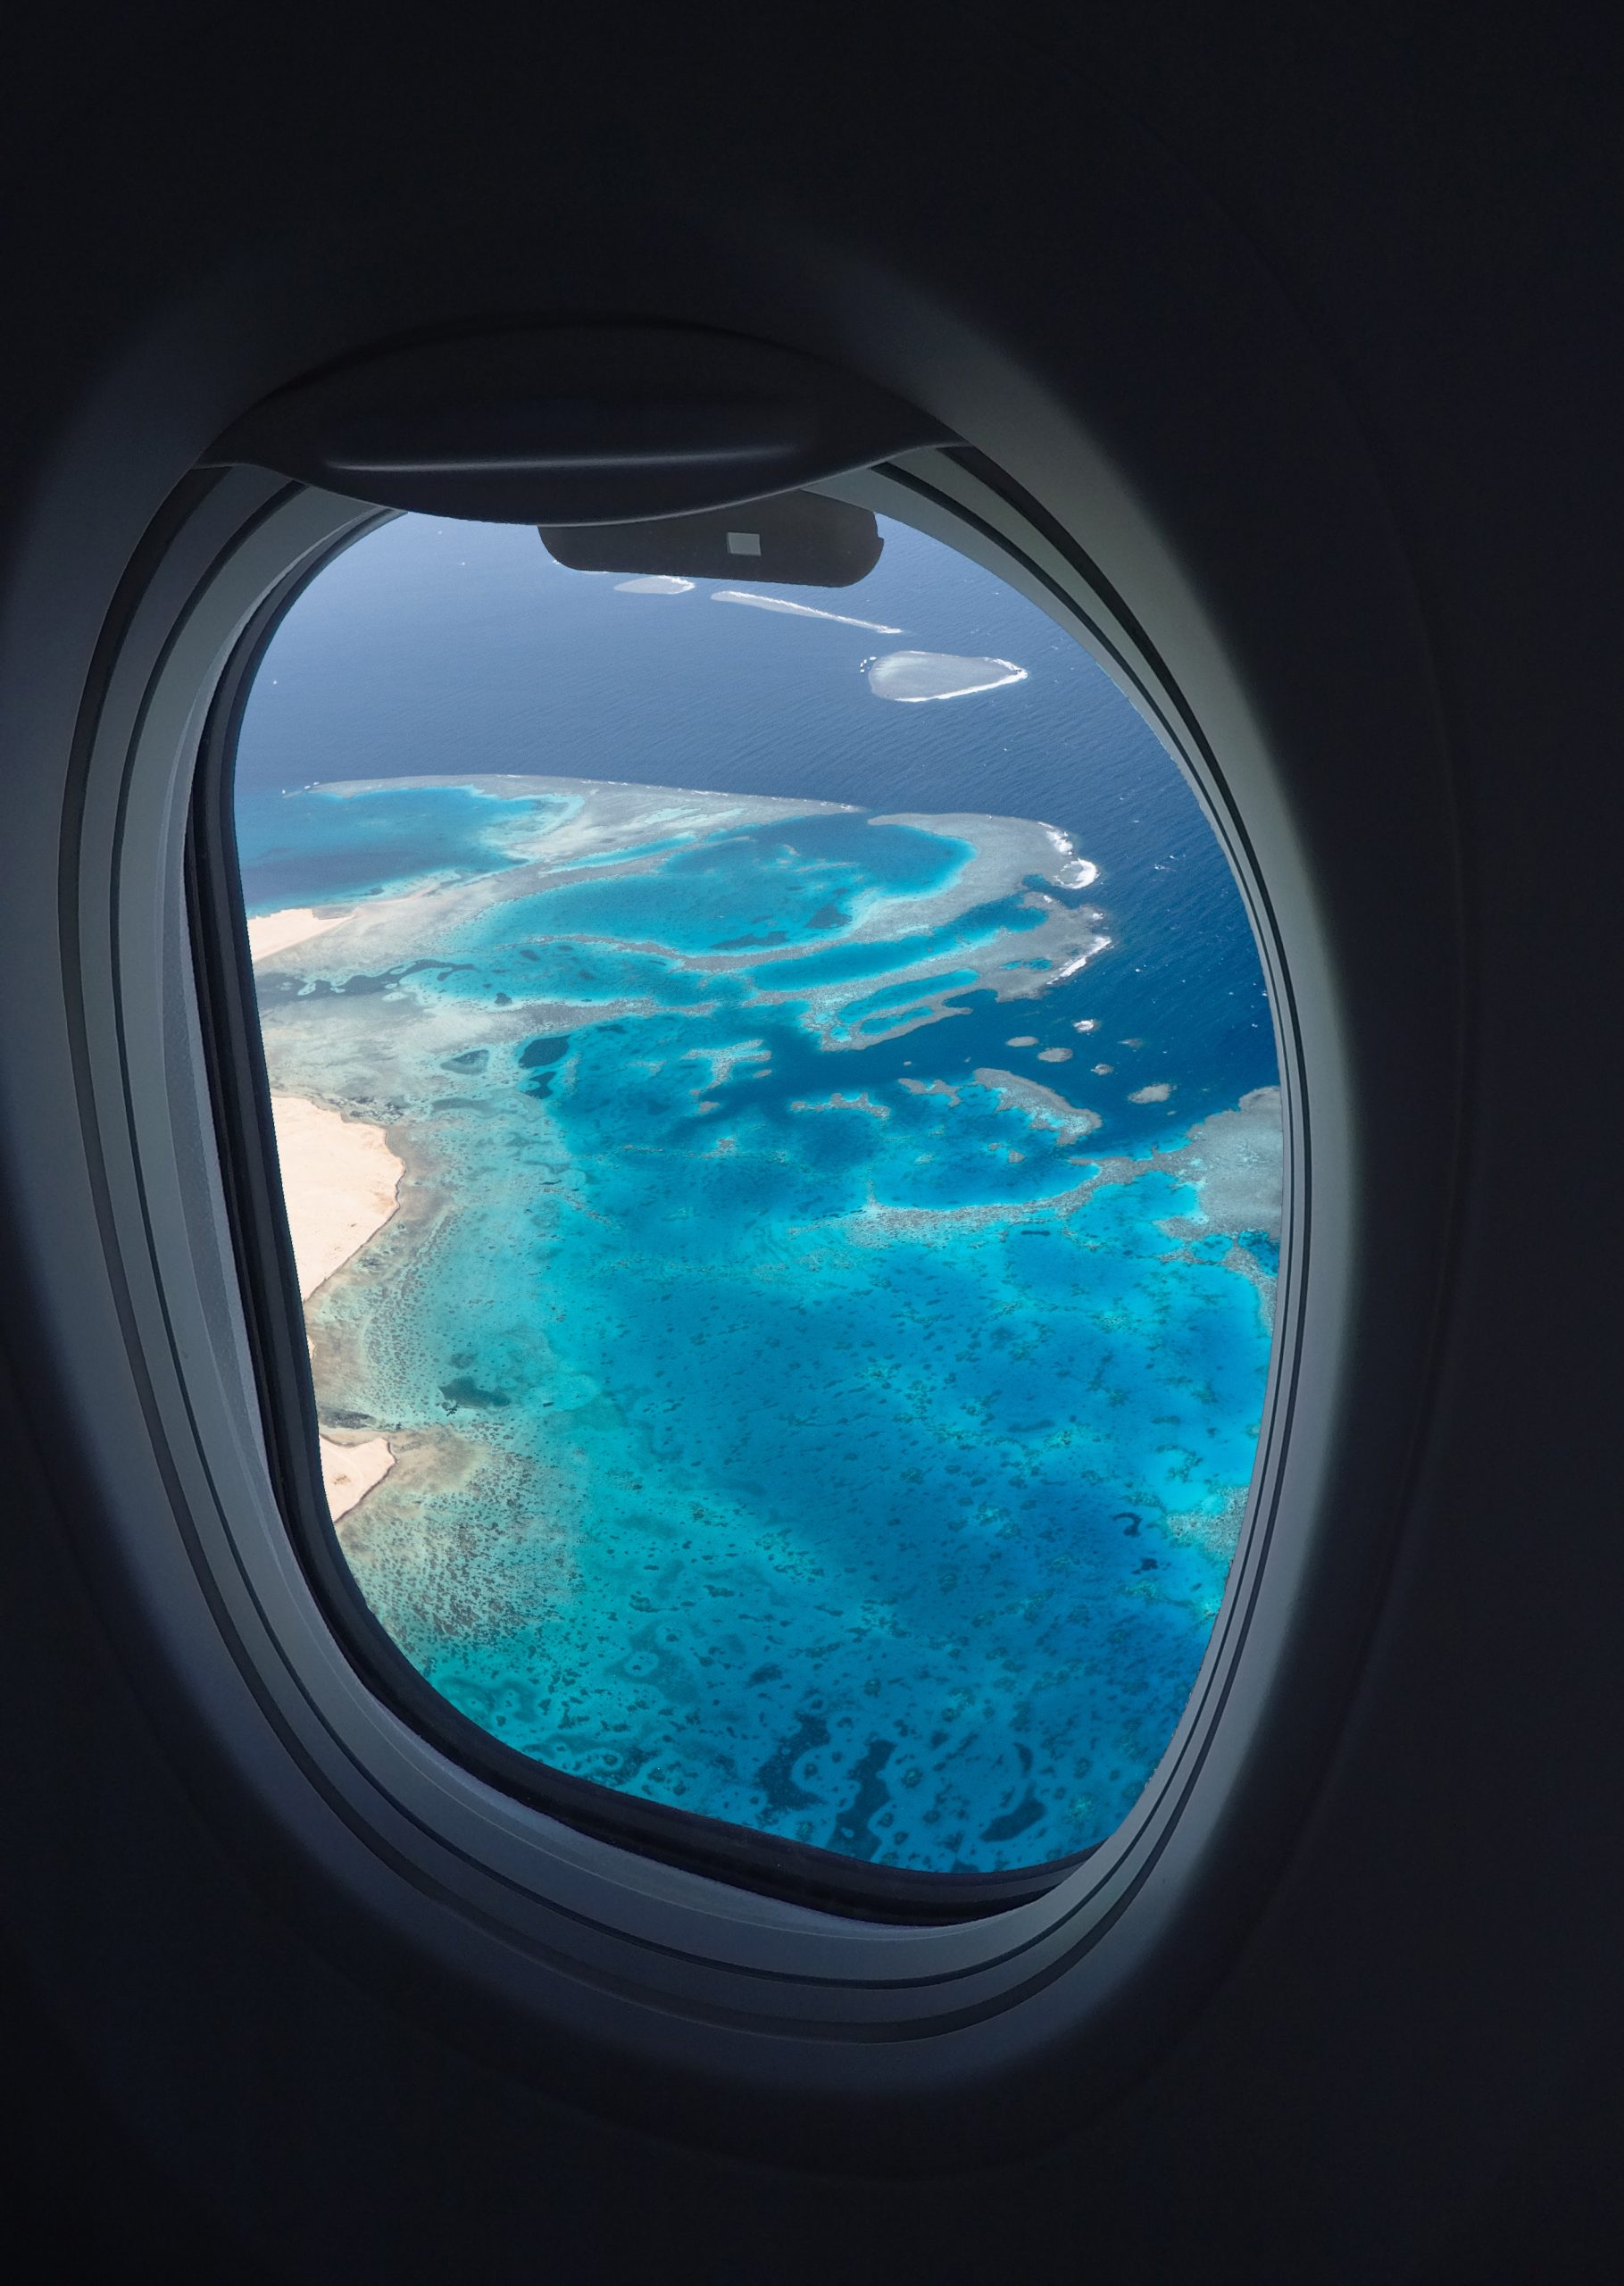 What Are The Most Popular Travel Destinations This Summer?